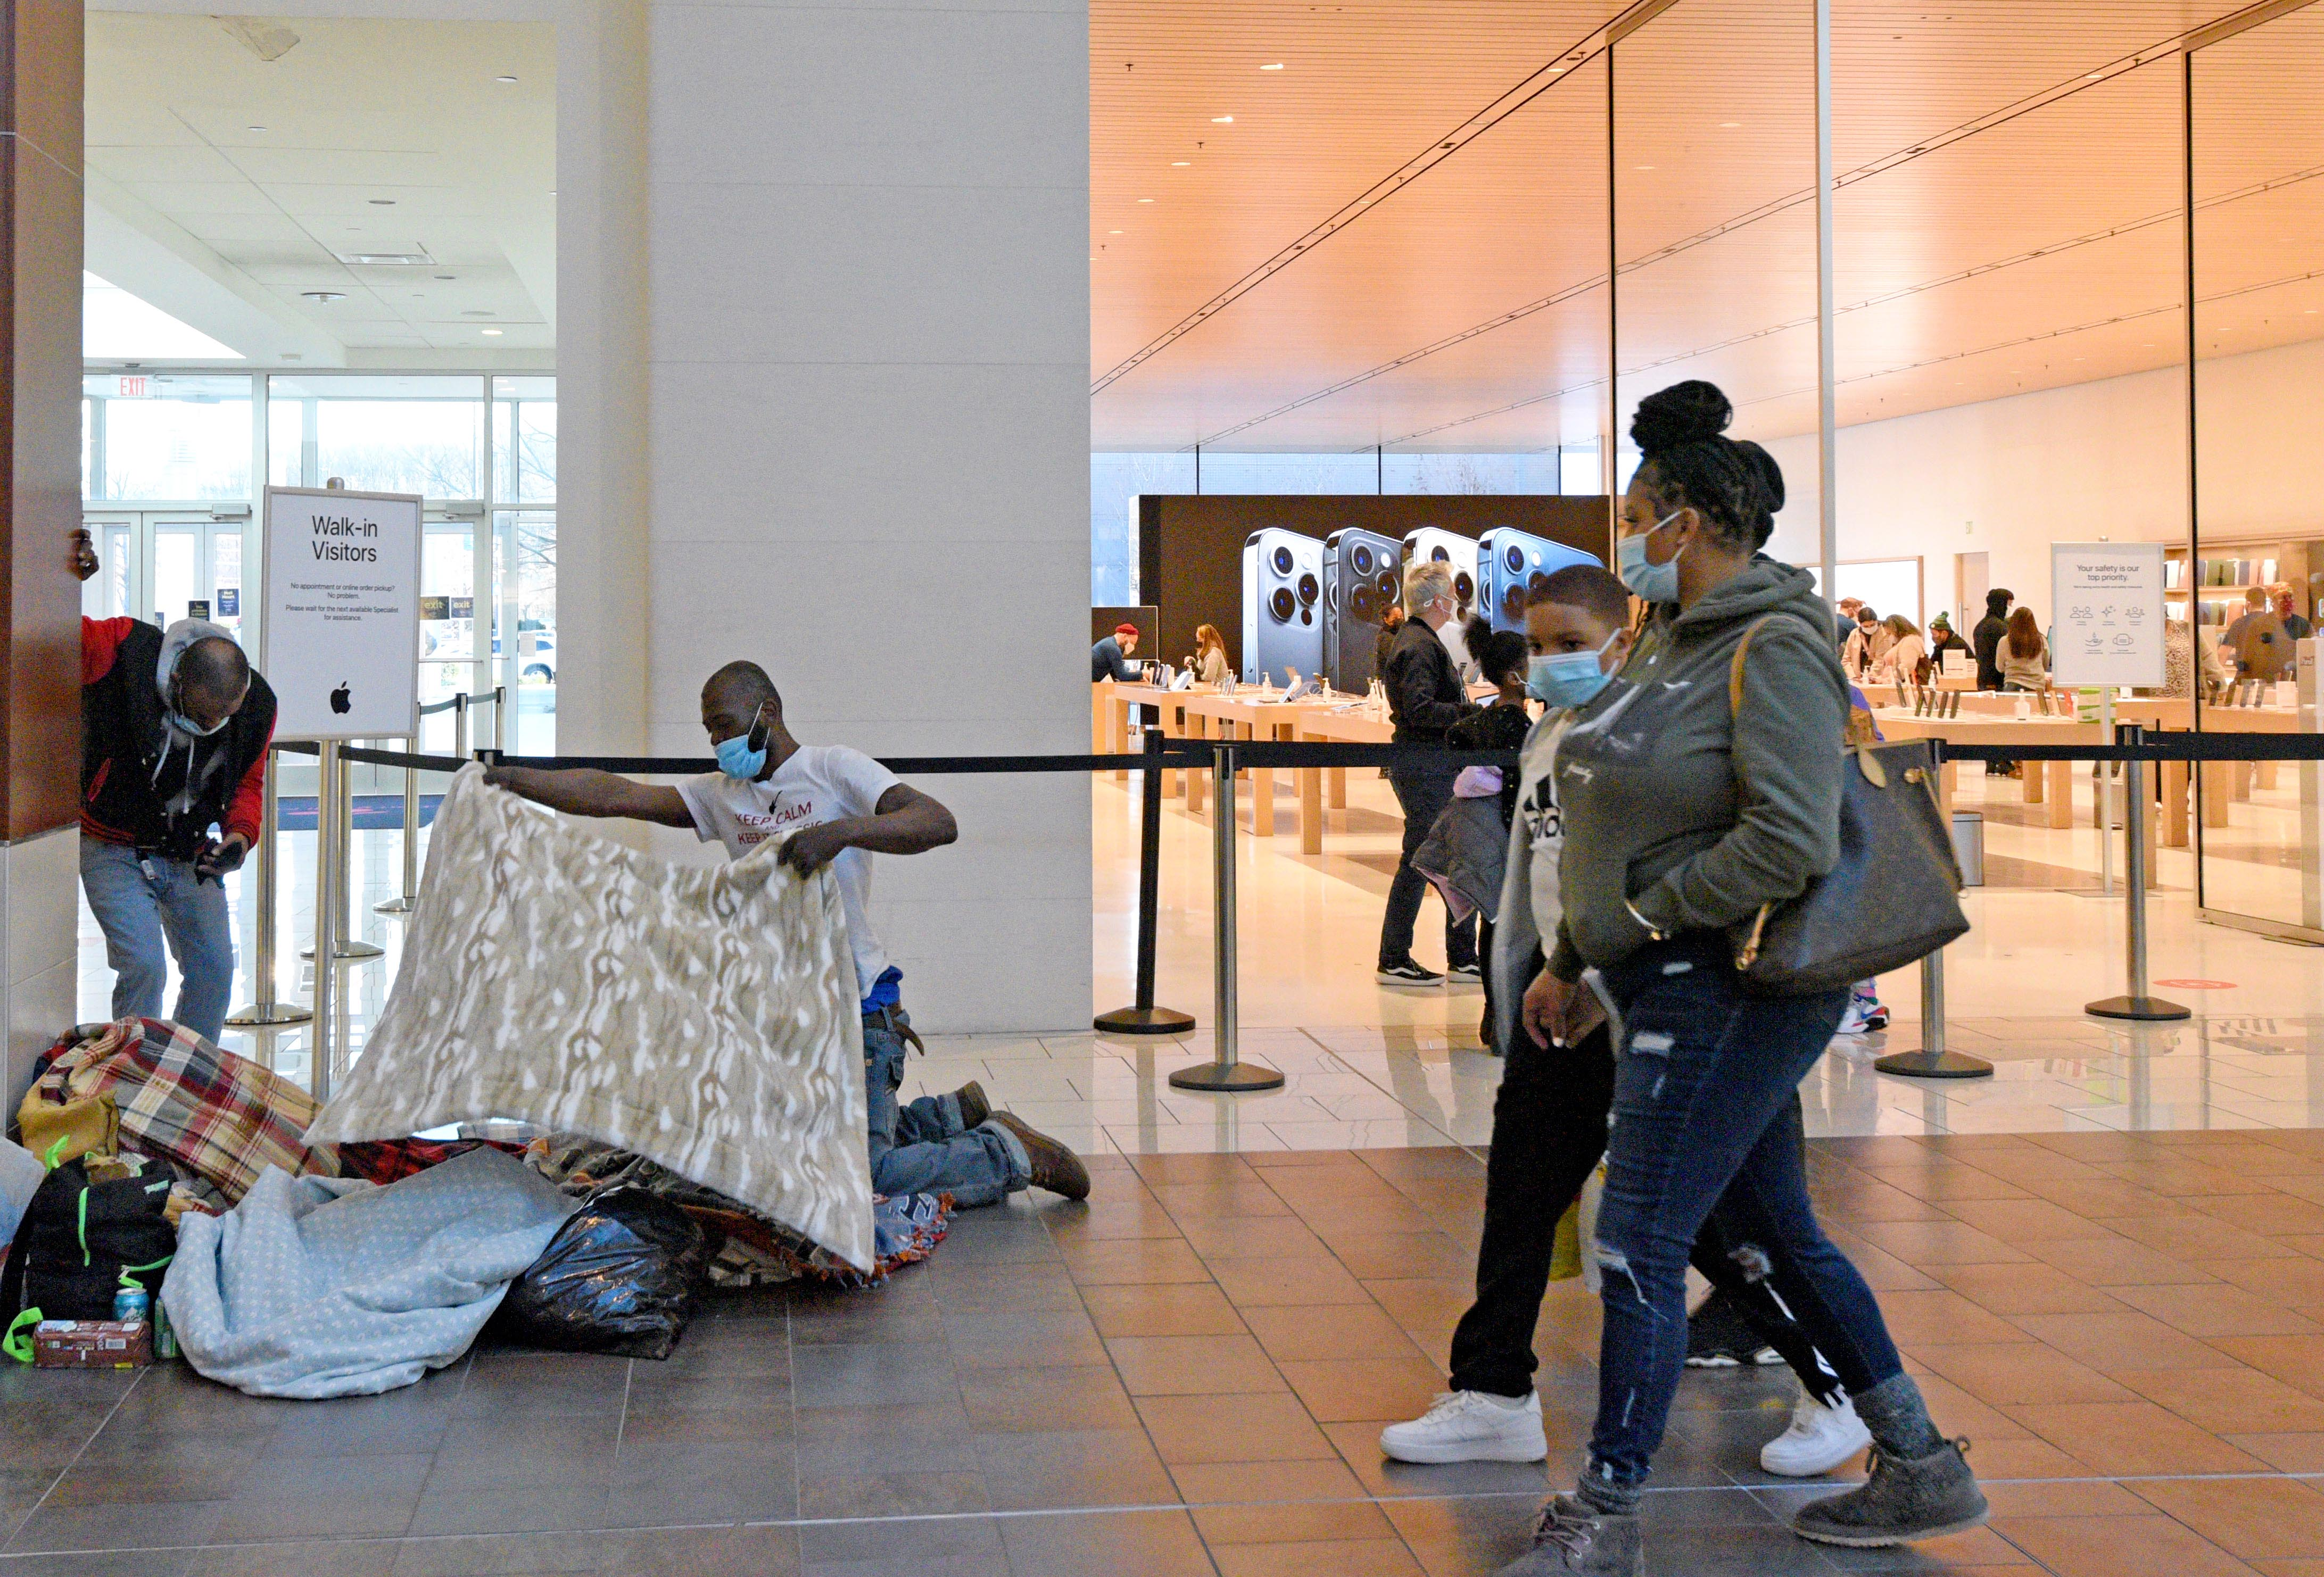 Unhoused individuals spread blankets on the floor of the Cherry Hill Mall